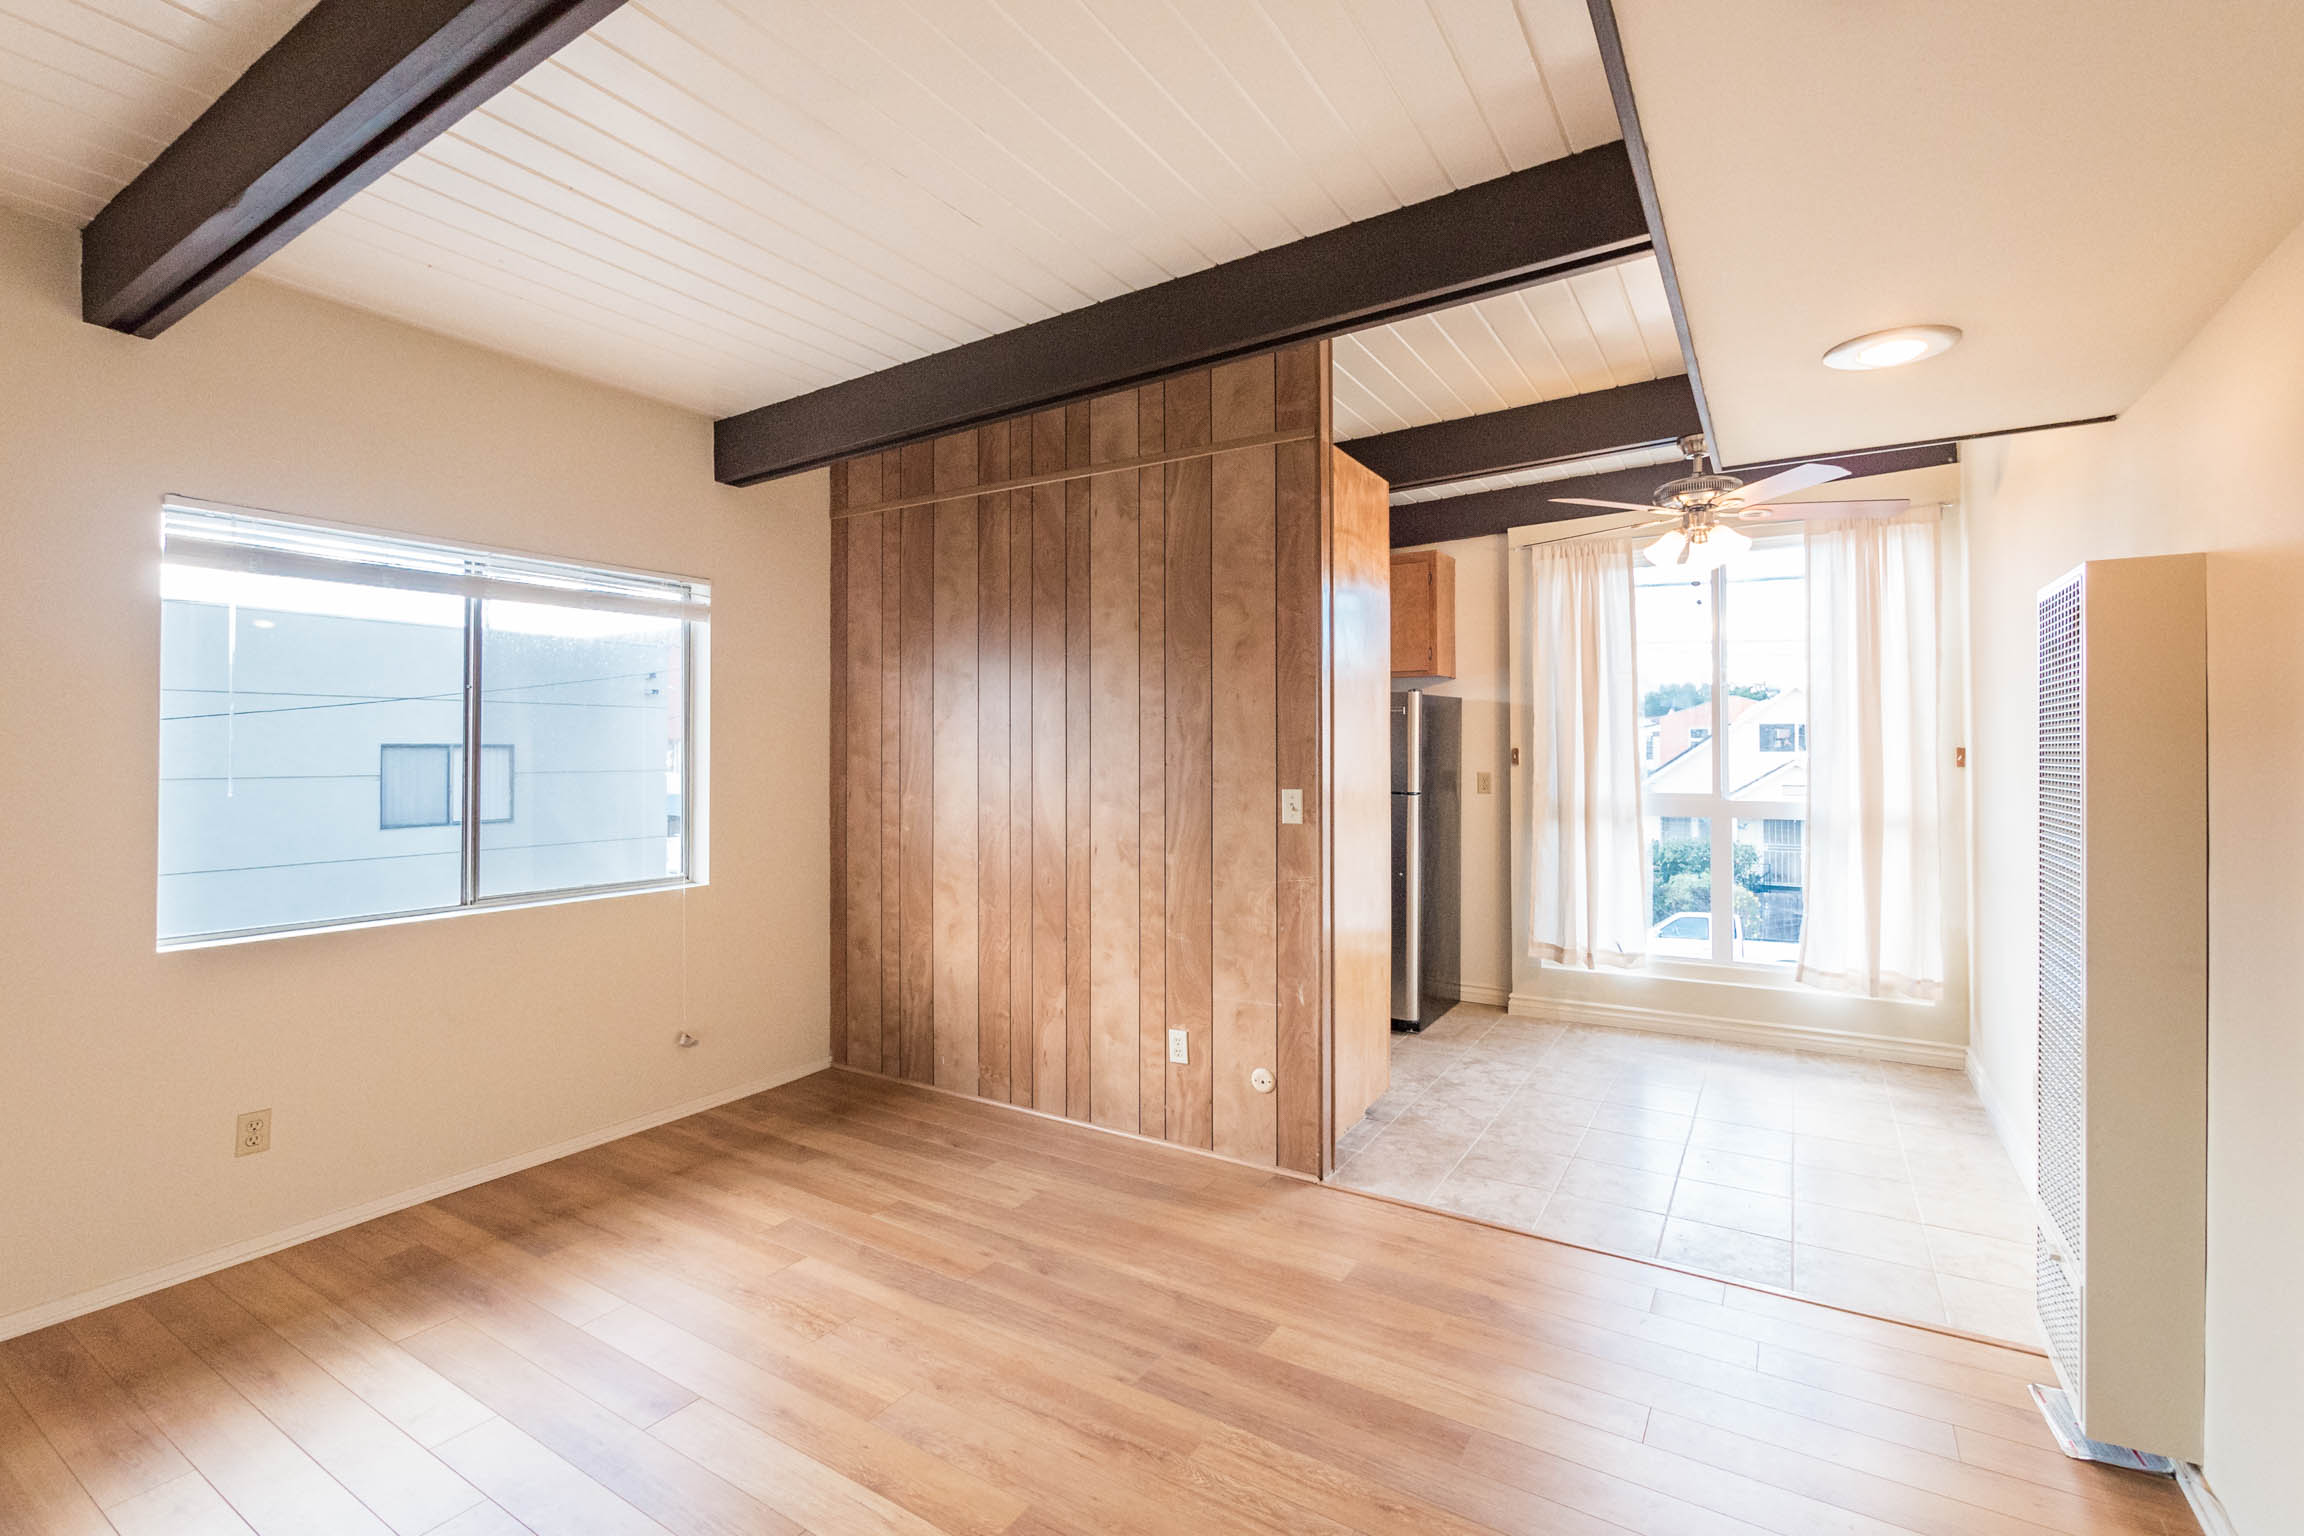 Midcentury 1 Bed/1 Bath Abode | Updated Appliances| Parking |Prime Chinatown Hotspot!